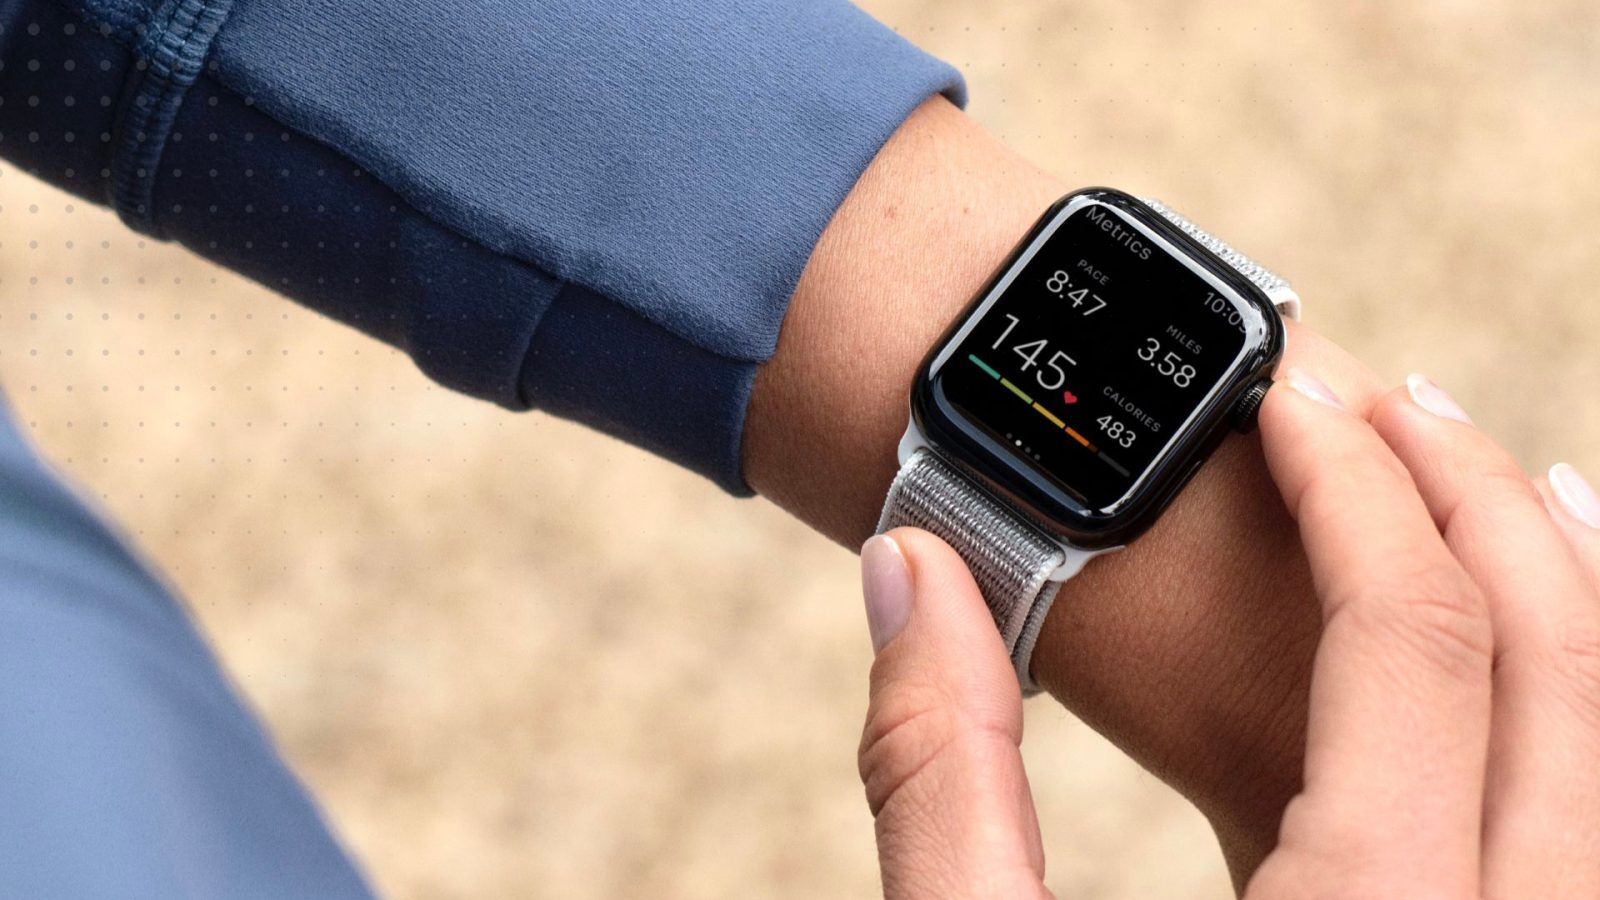 Peloton launches official Apple Watch app for viewing workout data